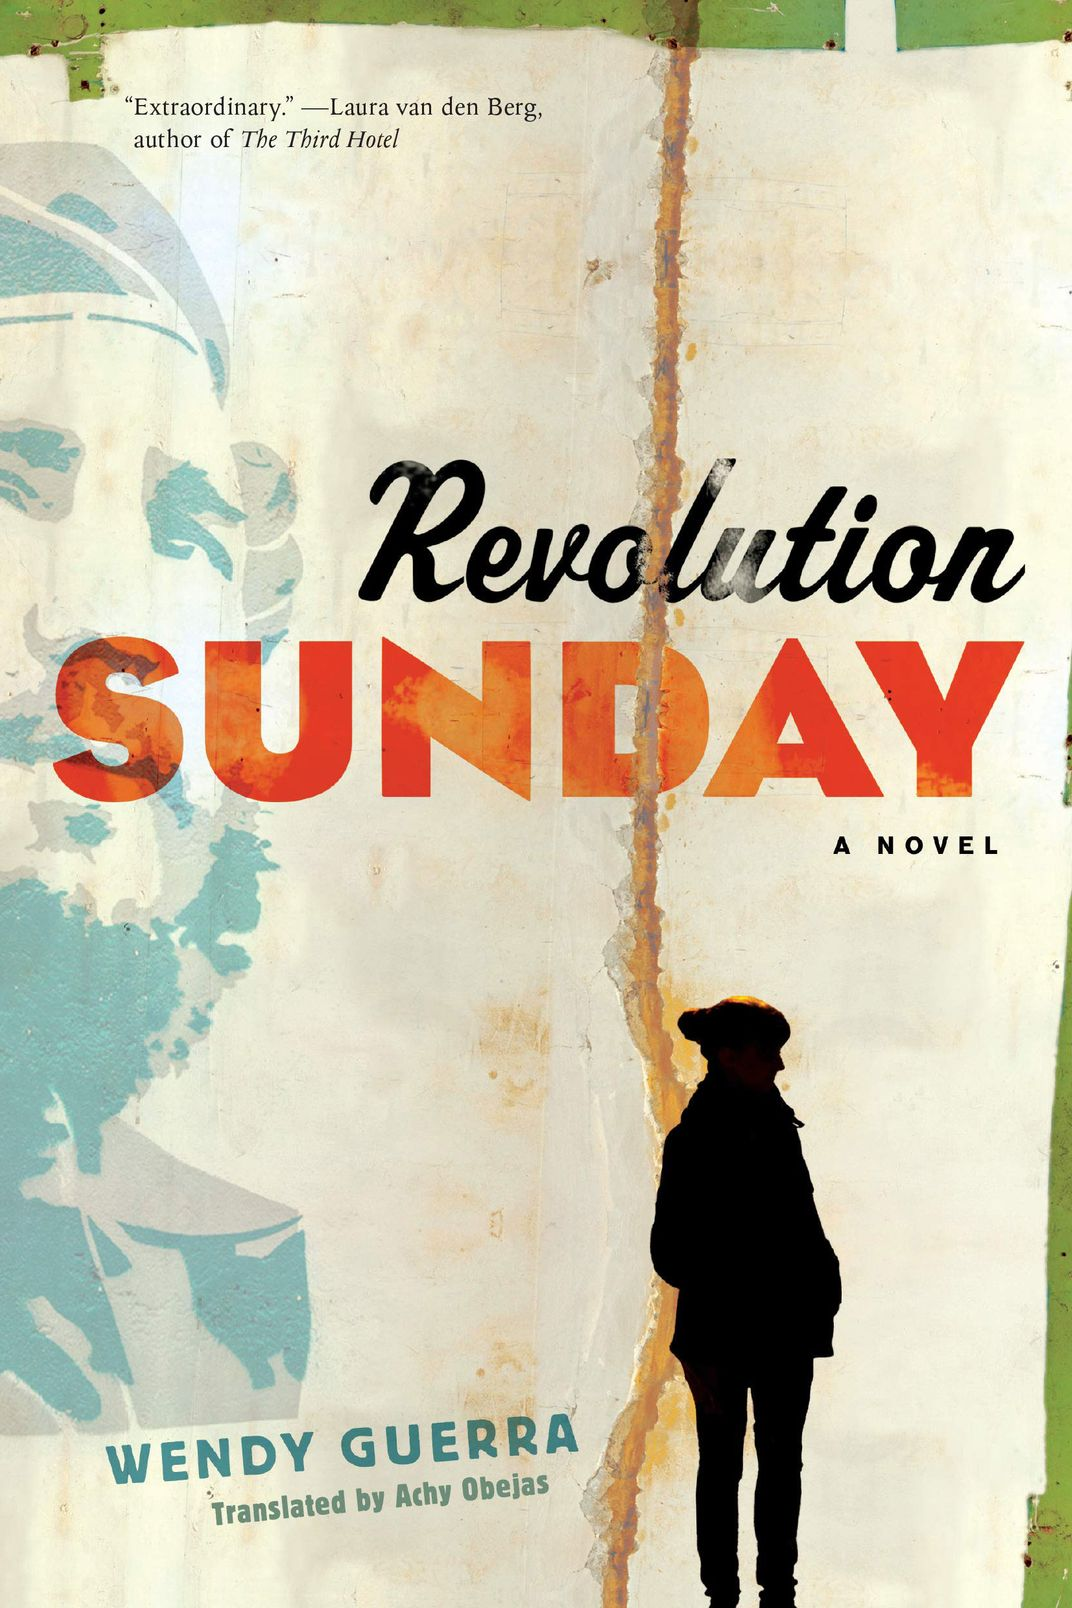 <em>Revolution Sunday</em>, by Wendy Guerra, trans. Achy Obejas (Melville House, December 4)